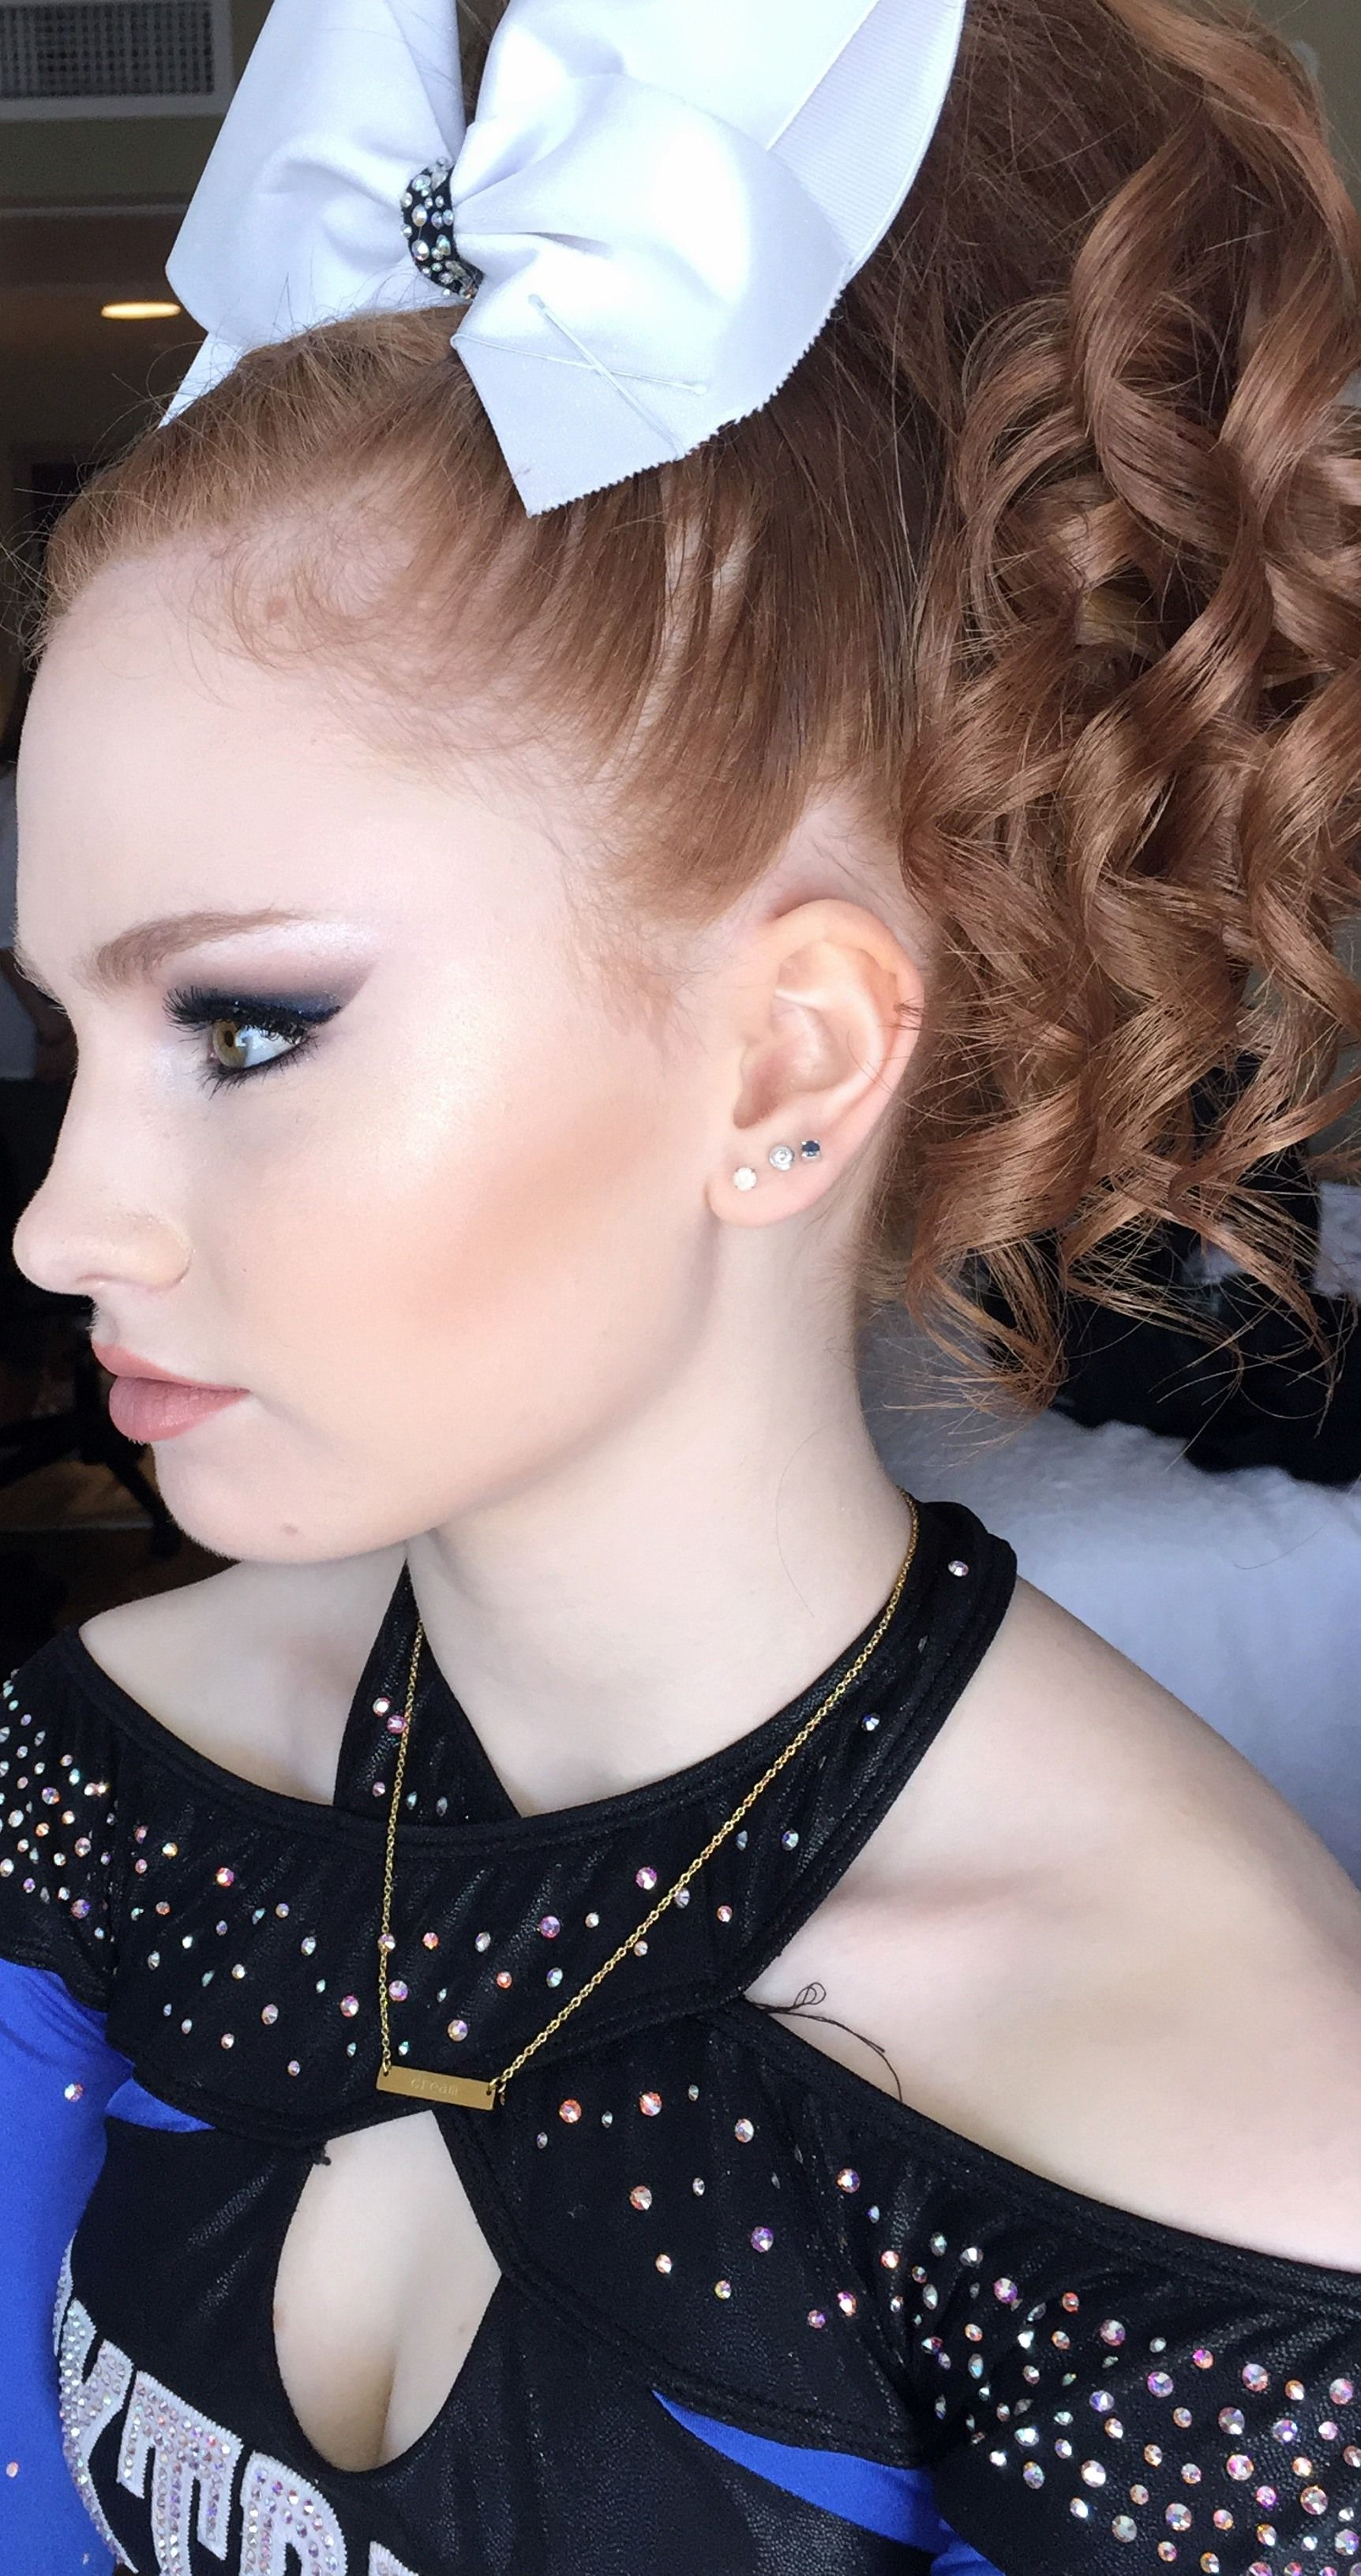 Sweat Proof Makeup Tips And Products Cheer makeup, Cheer